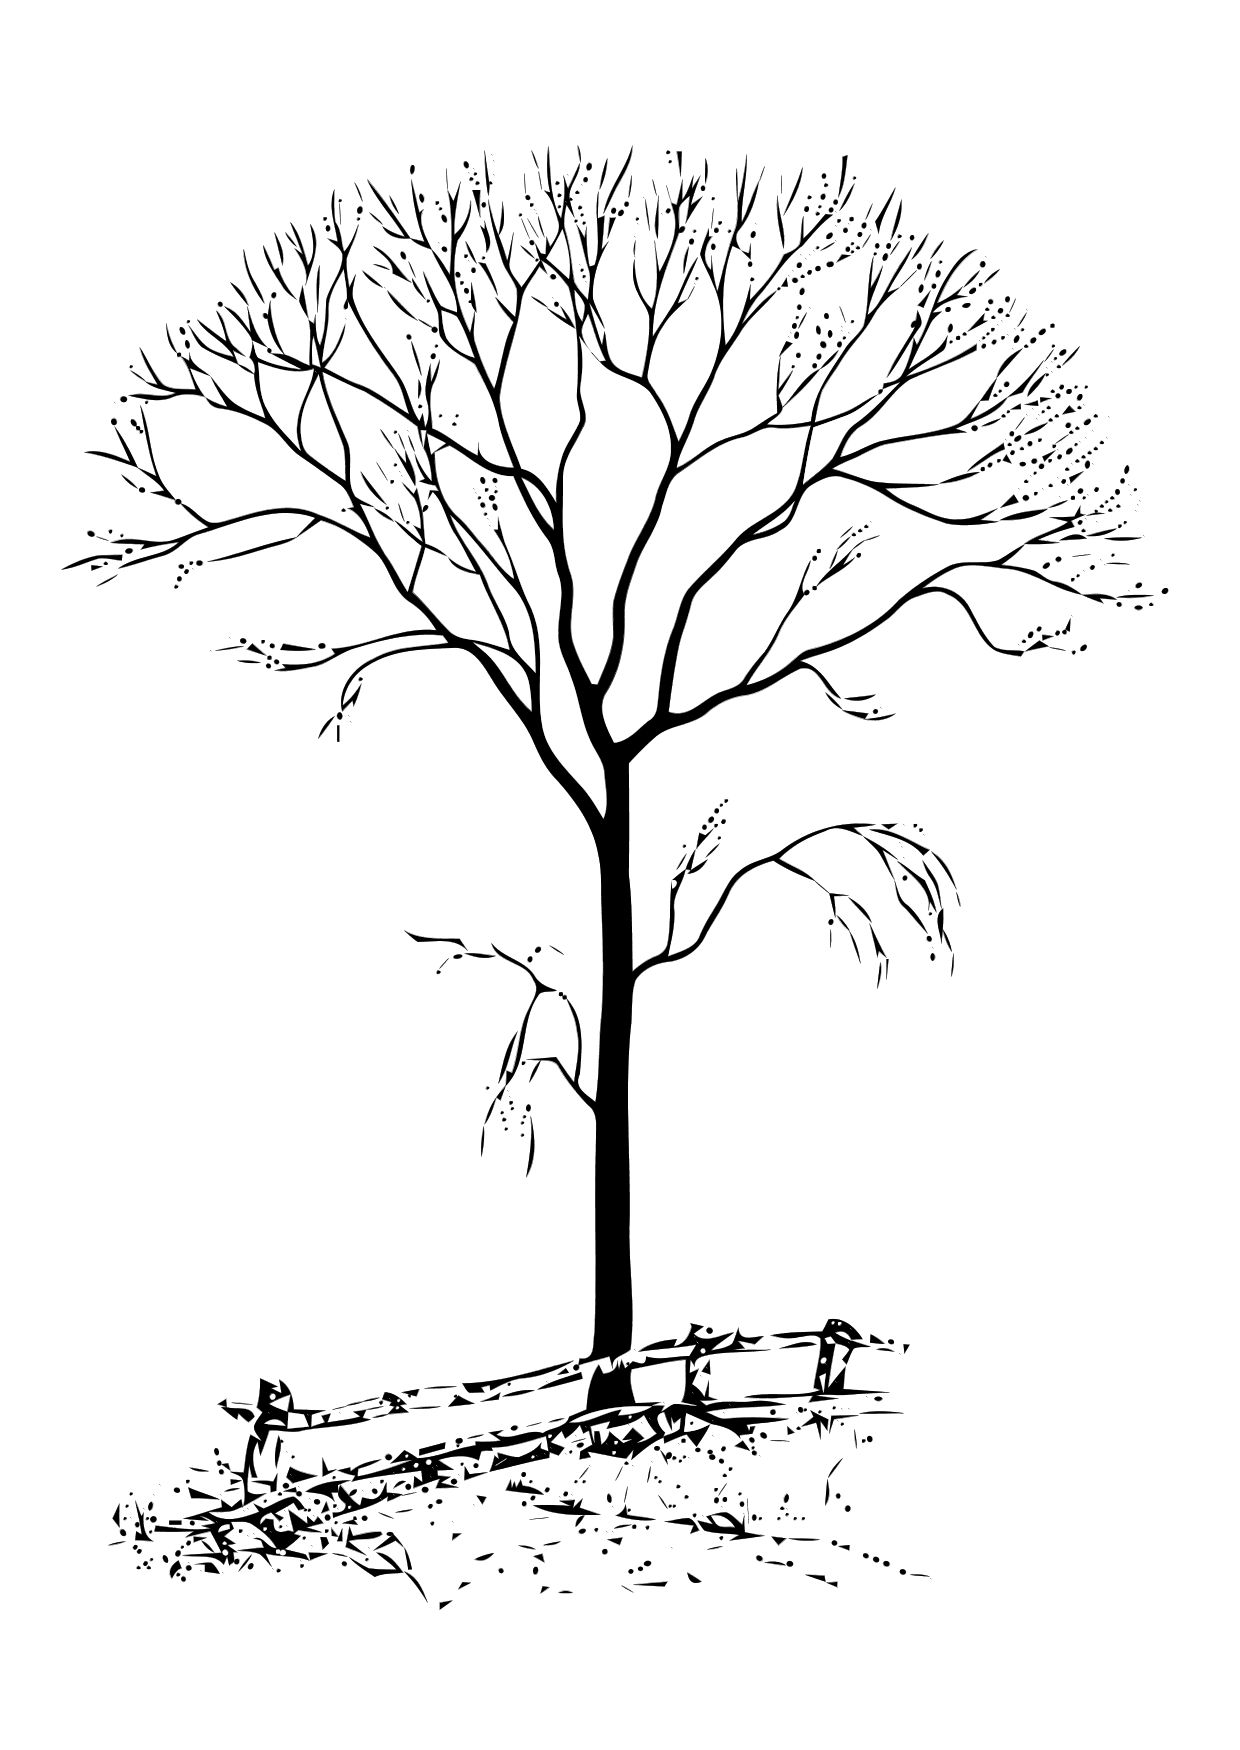 Free Printable Tree Coloring Pages For Kids Coloring Pages Of Trees Without Leaves